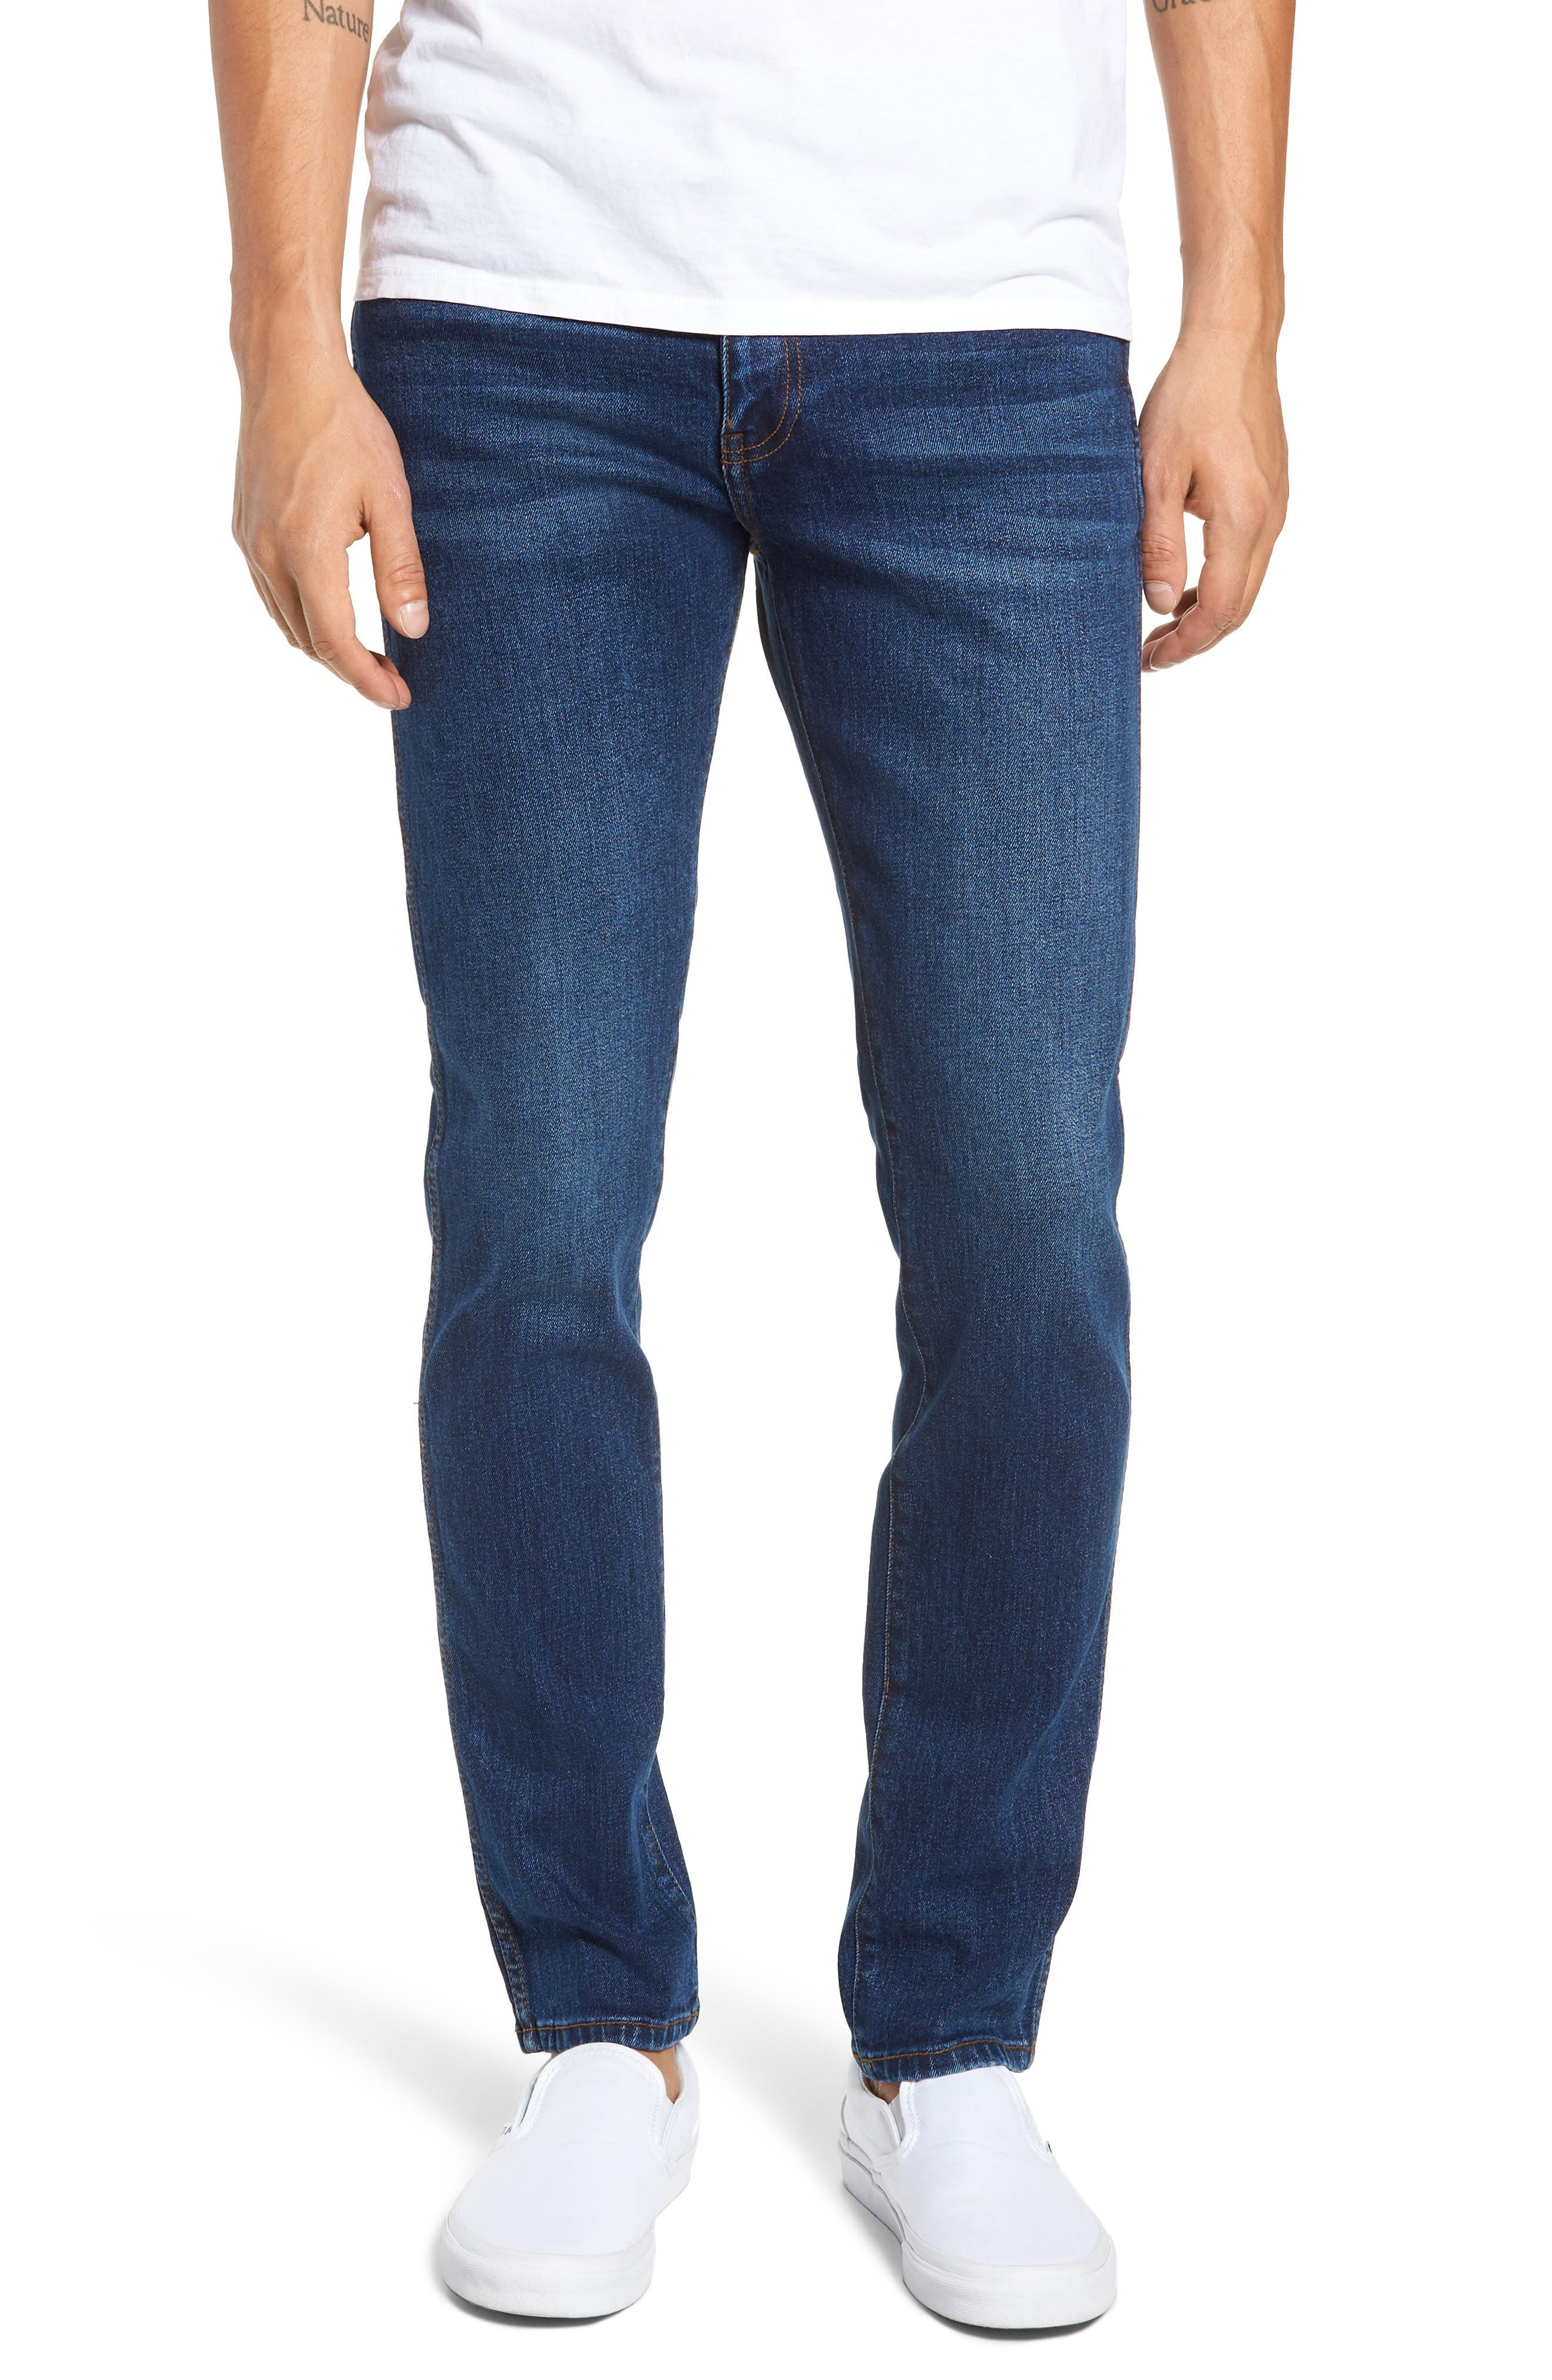 Snap Skinny Fit Jeans,                         Main,                         color, DARK SHADED BLUE